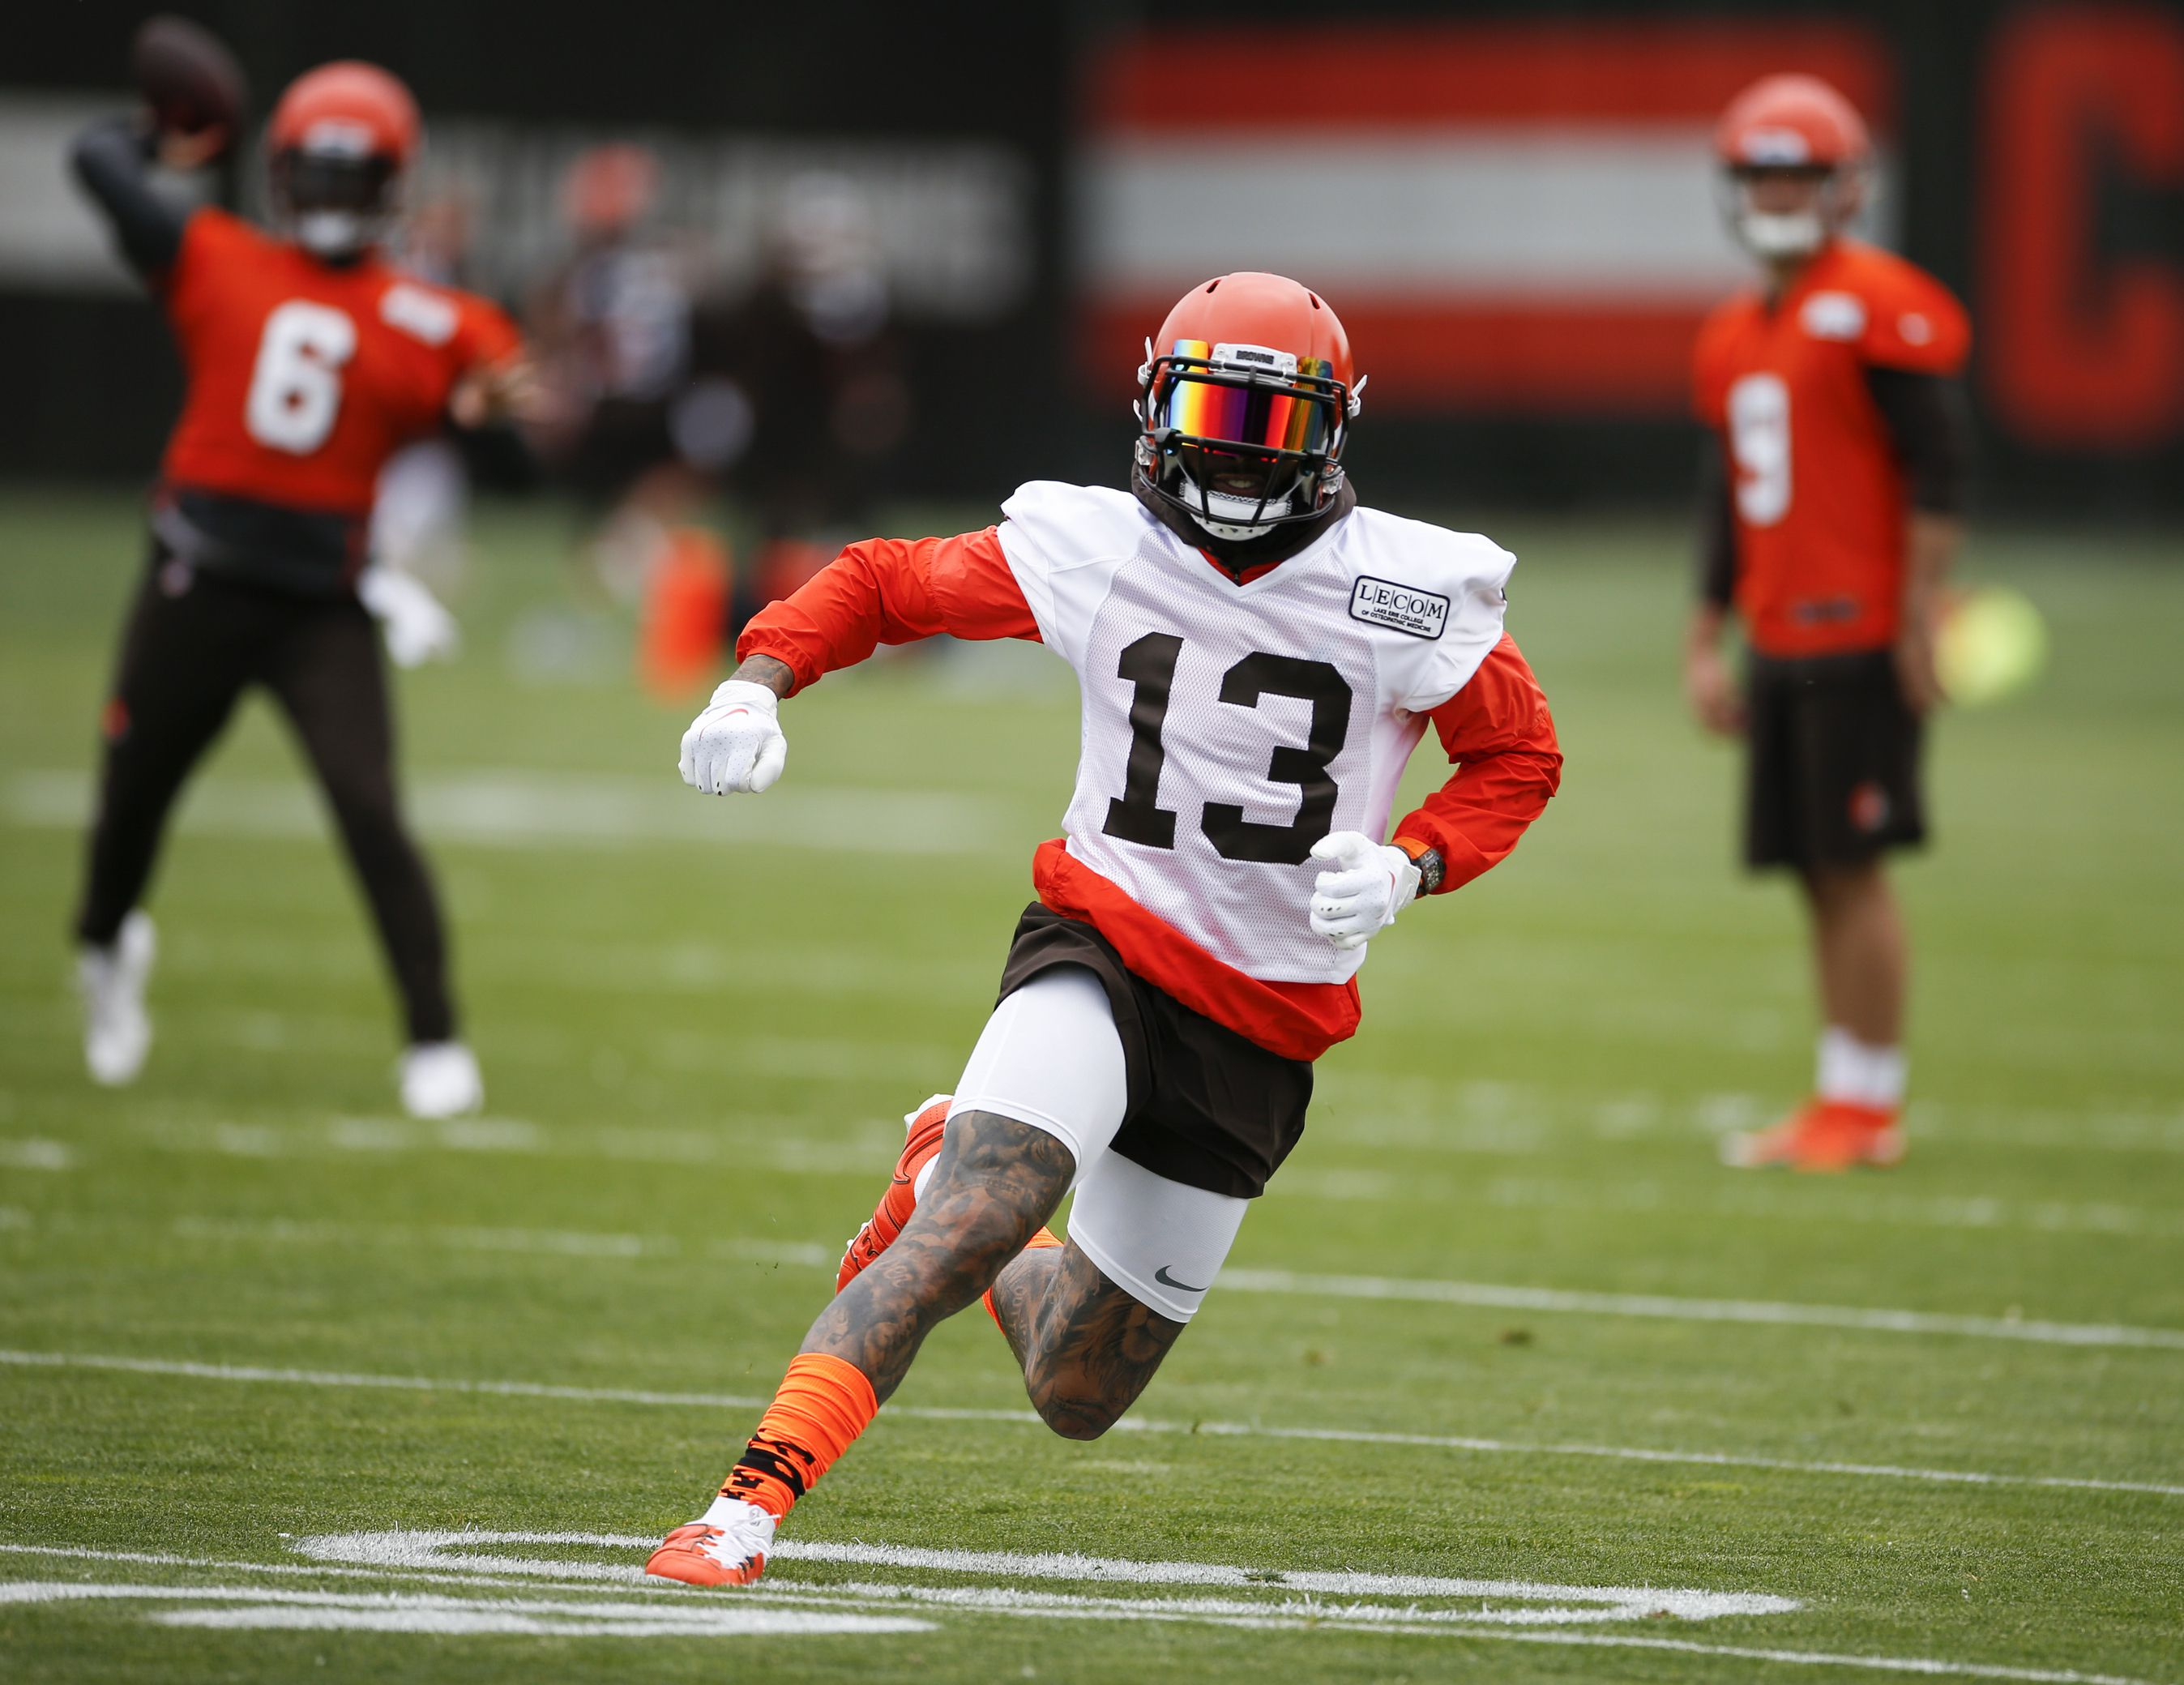 on sale eb4a8 83082 Browns star Odell Beckham Jr. close to being game ready ...